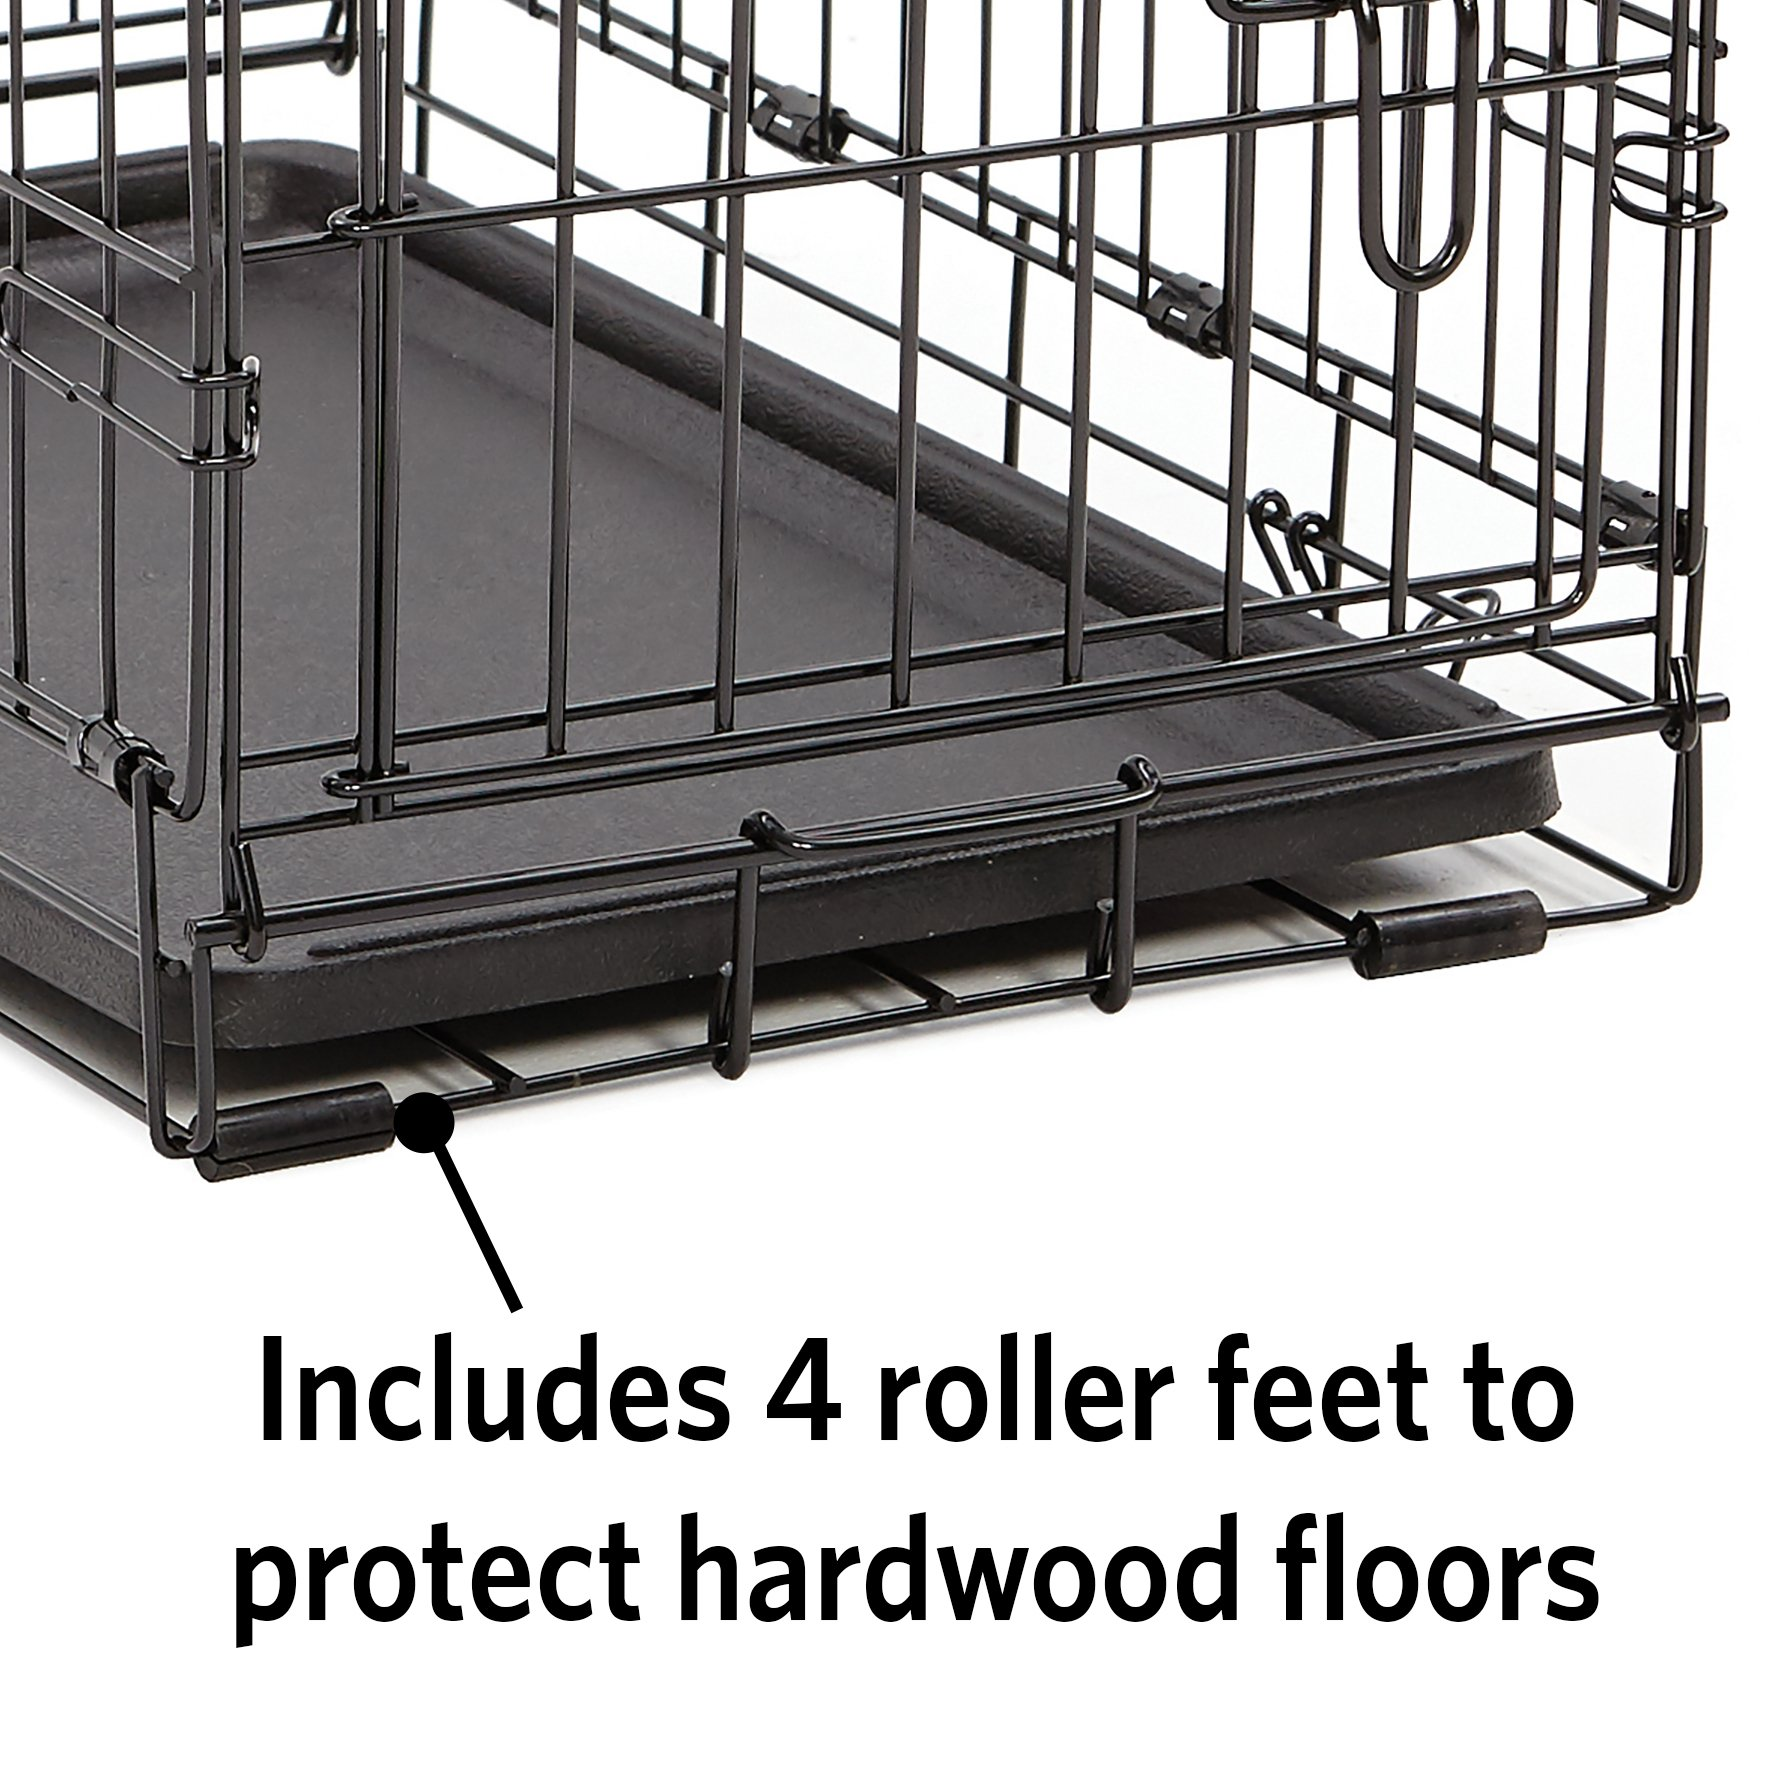 XL Dog Crate | MidWest iCrate Double Door Folding Metal Dog Crate w/ Divider Panel, Floor Protecting Feet & Leak-Proof Dog Tray | 48L x 30W x 33H Inches, XL Dog Breed, Black by MidWest Homes for Pets (Image #3)